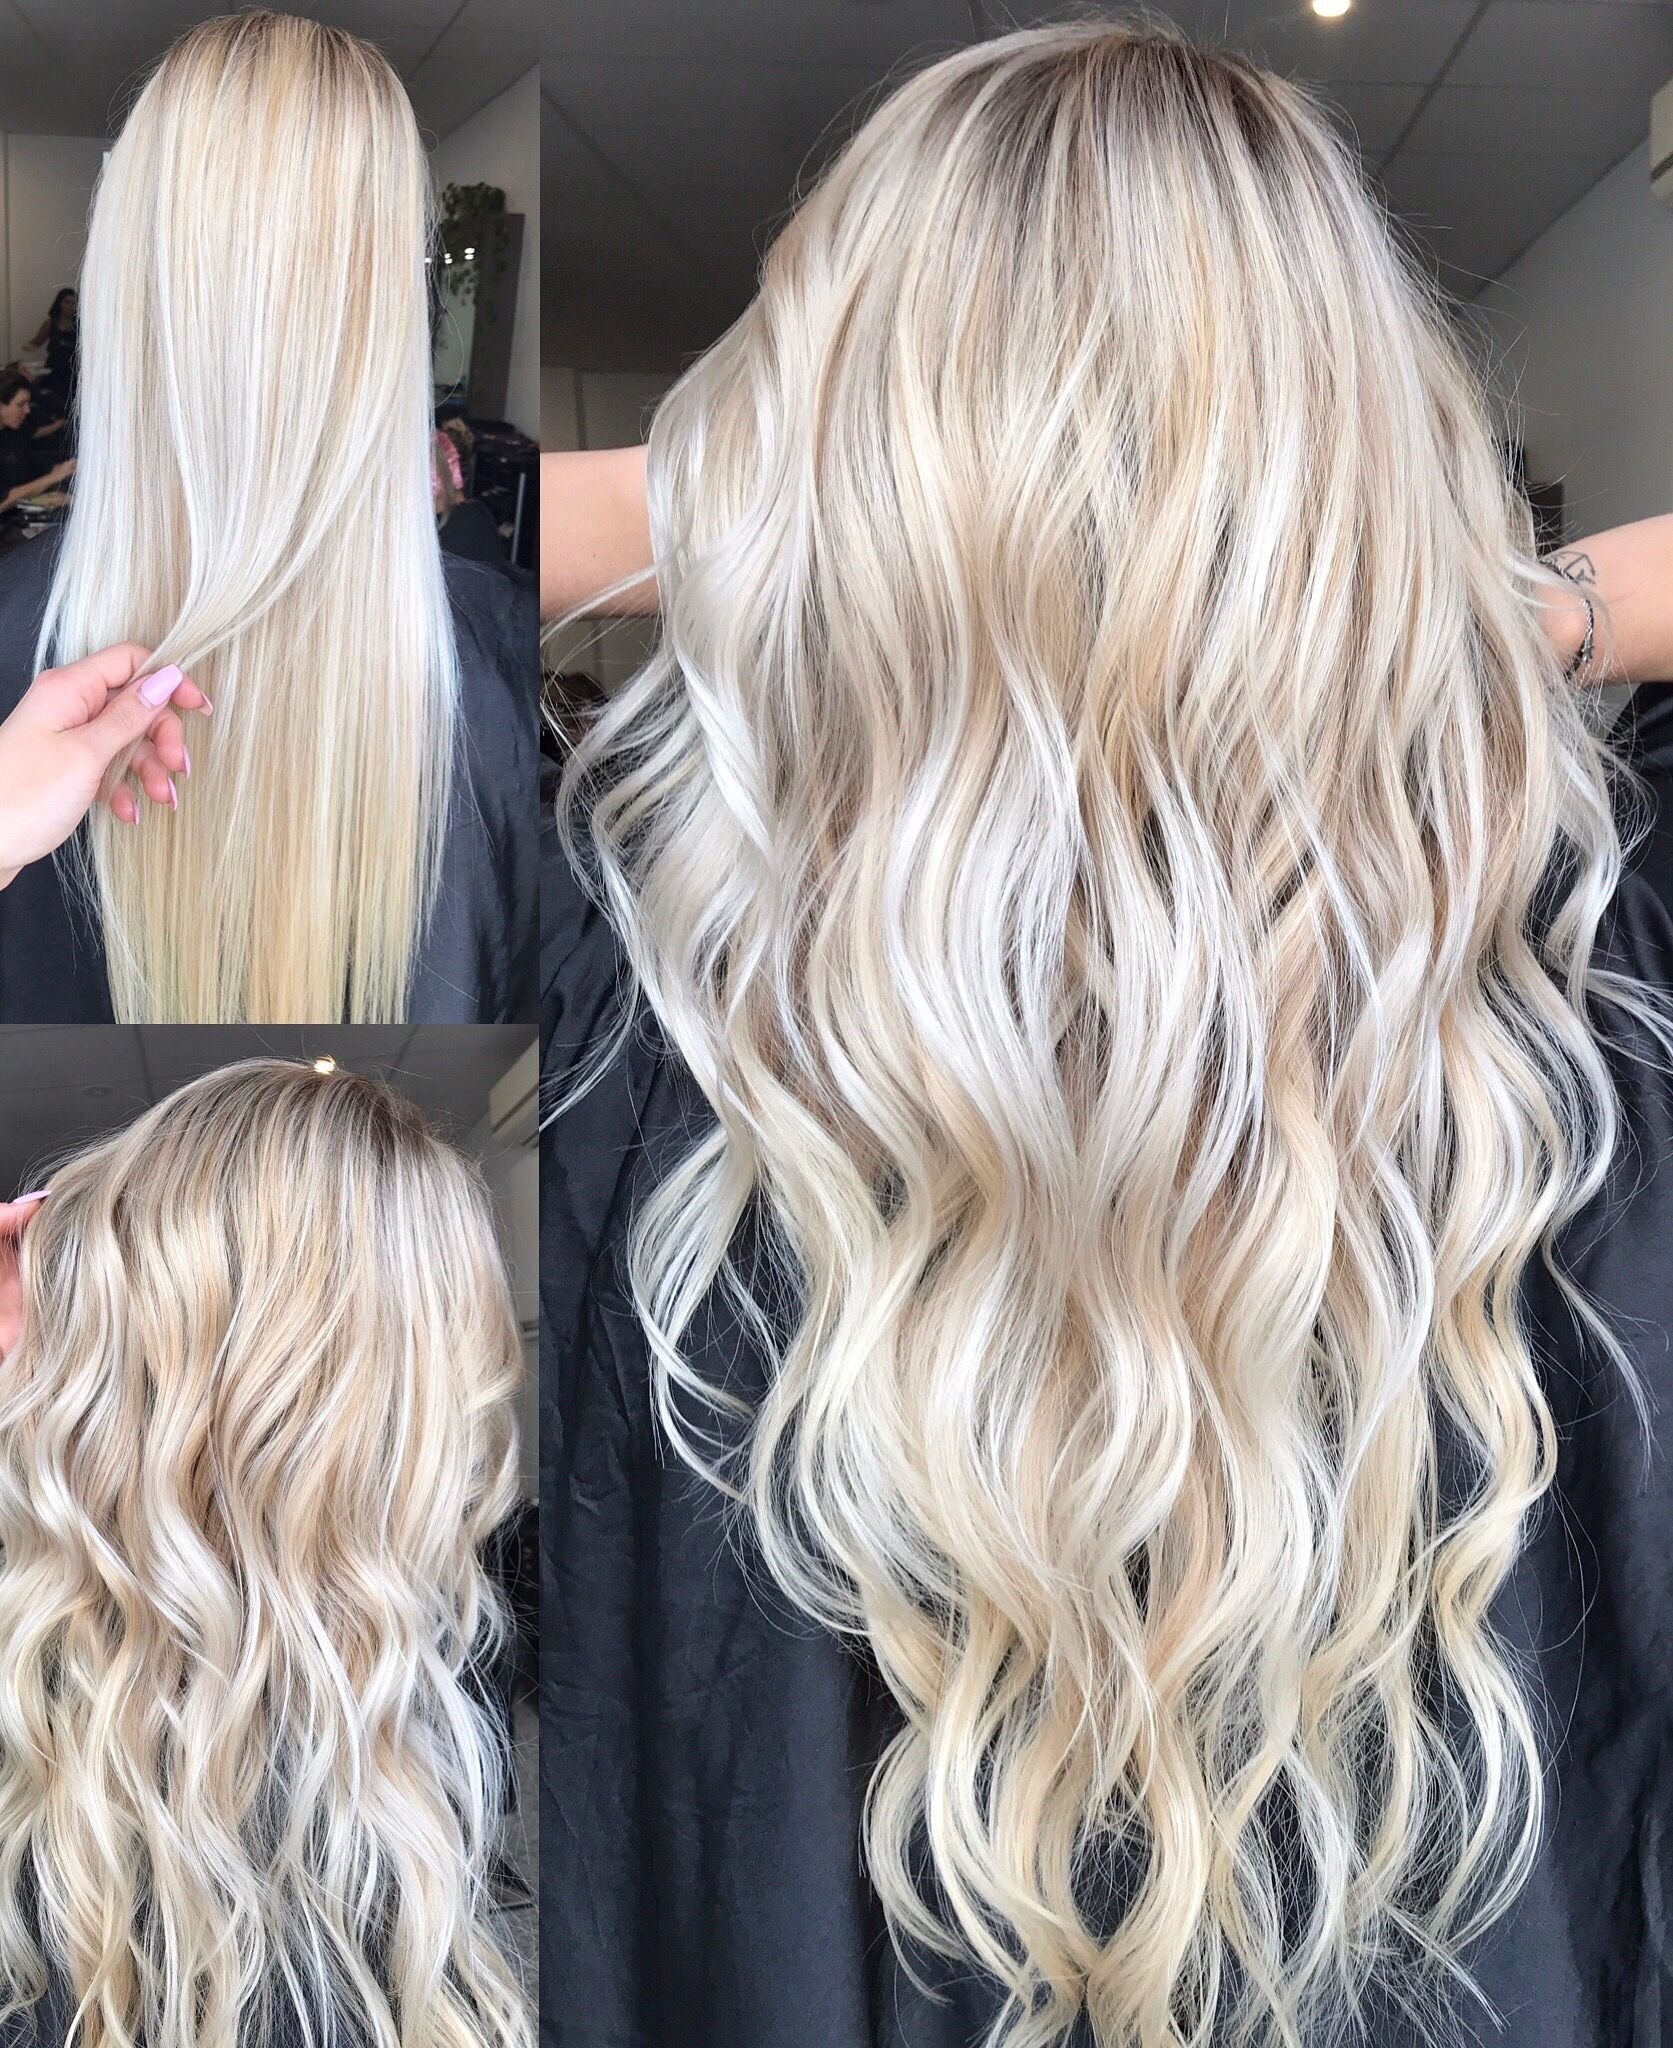 15 Inspirations Of Long Blonde Hair Colors: Blonde Balayage, Long Hair, Cool Girl Hair ϸ� Lived In Hair